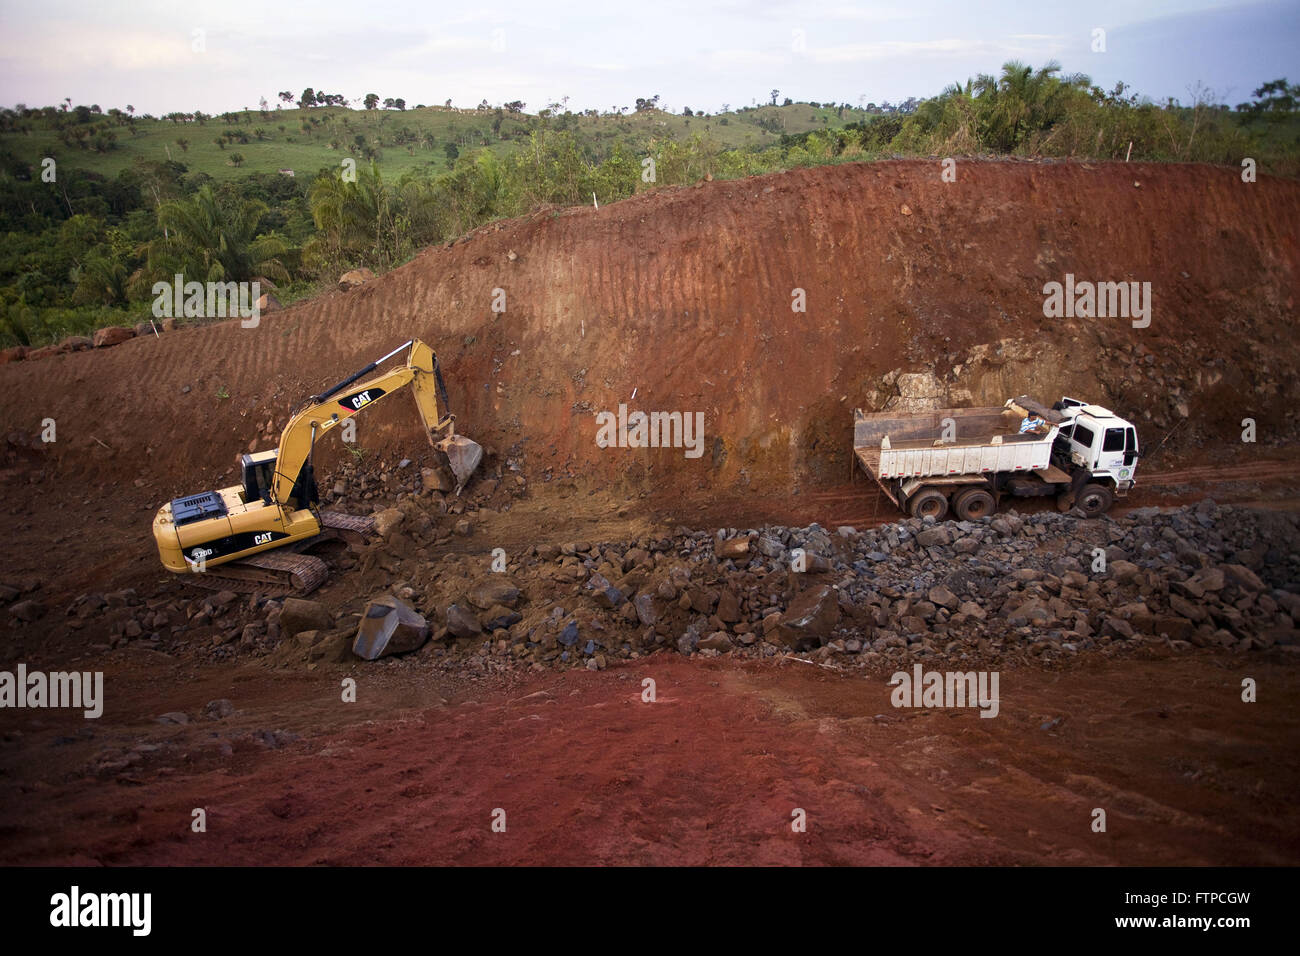 Earth mover by hillside. - Stock Image